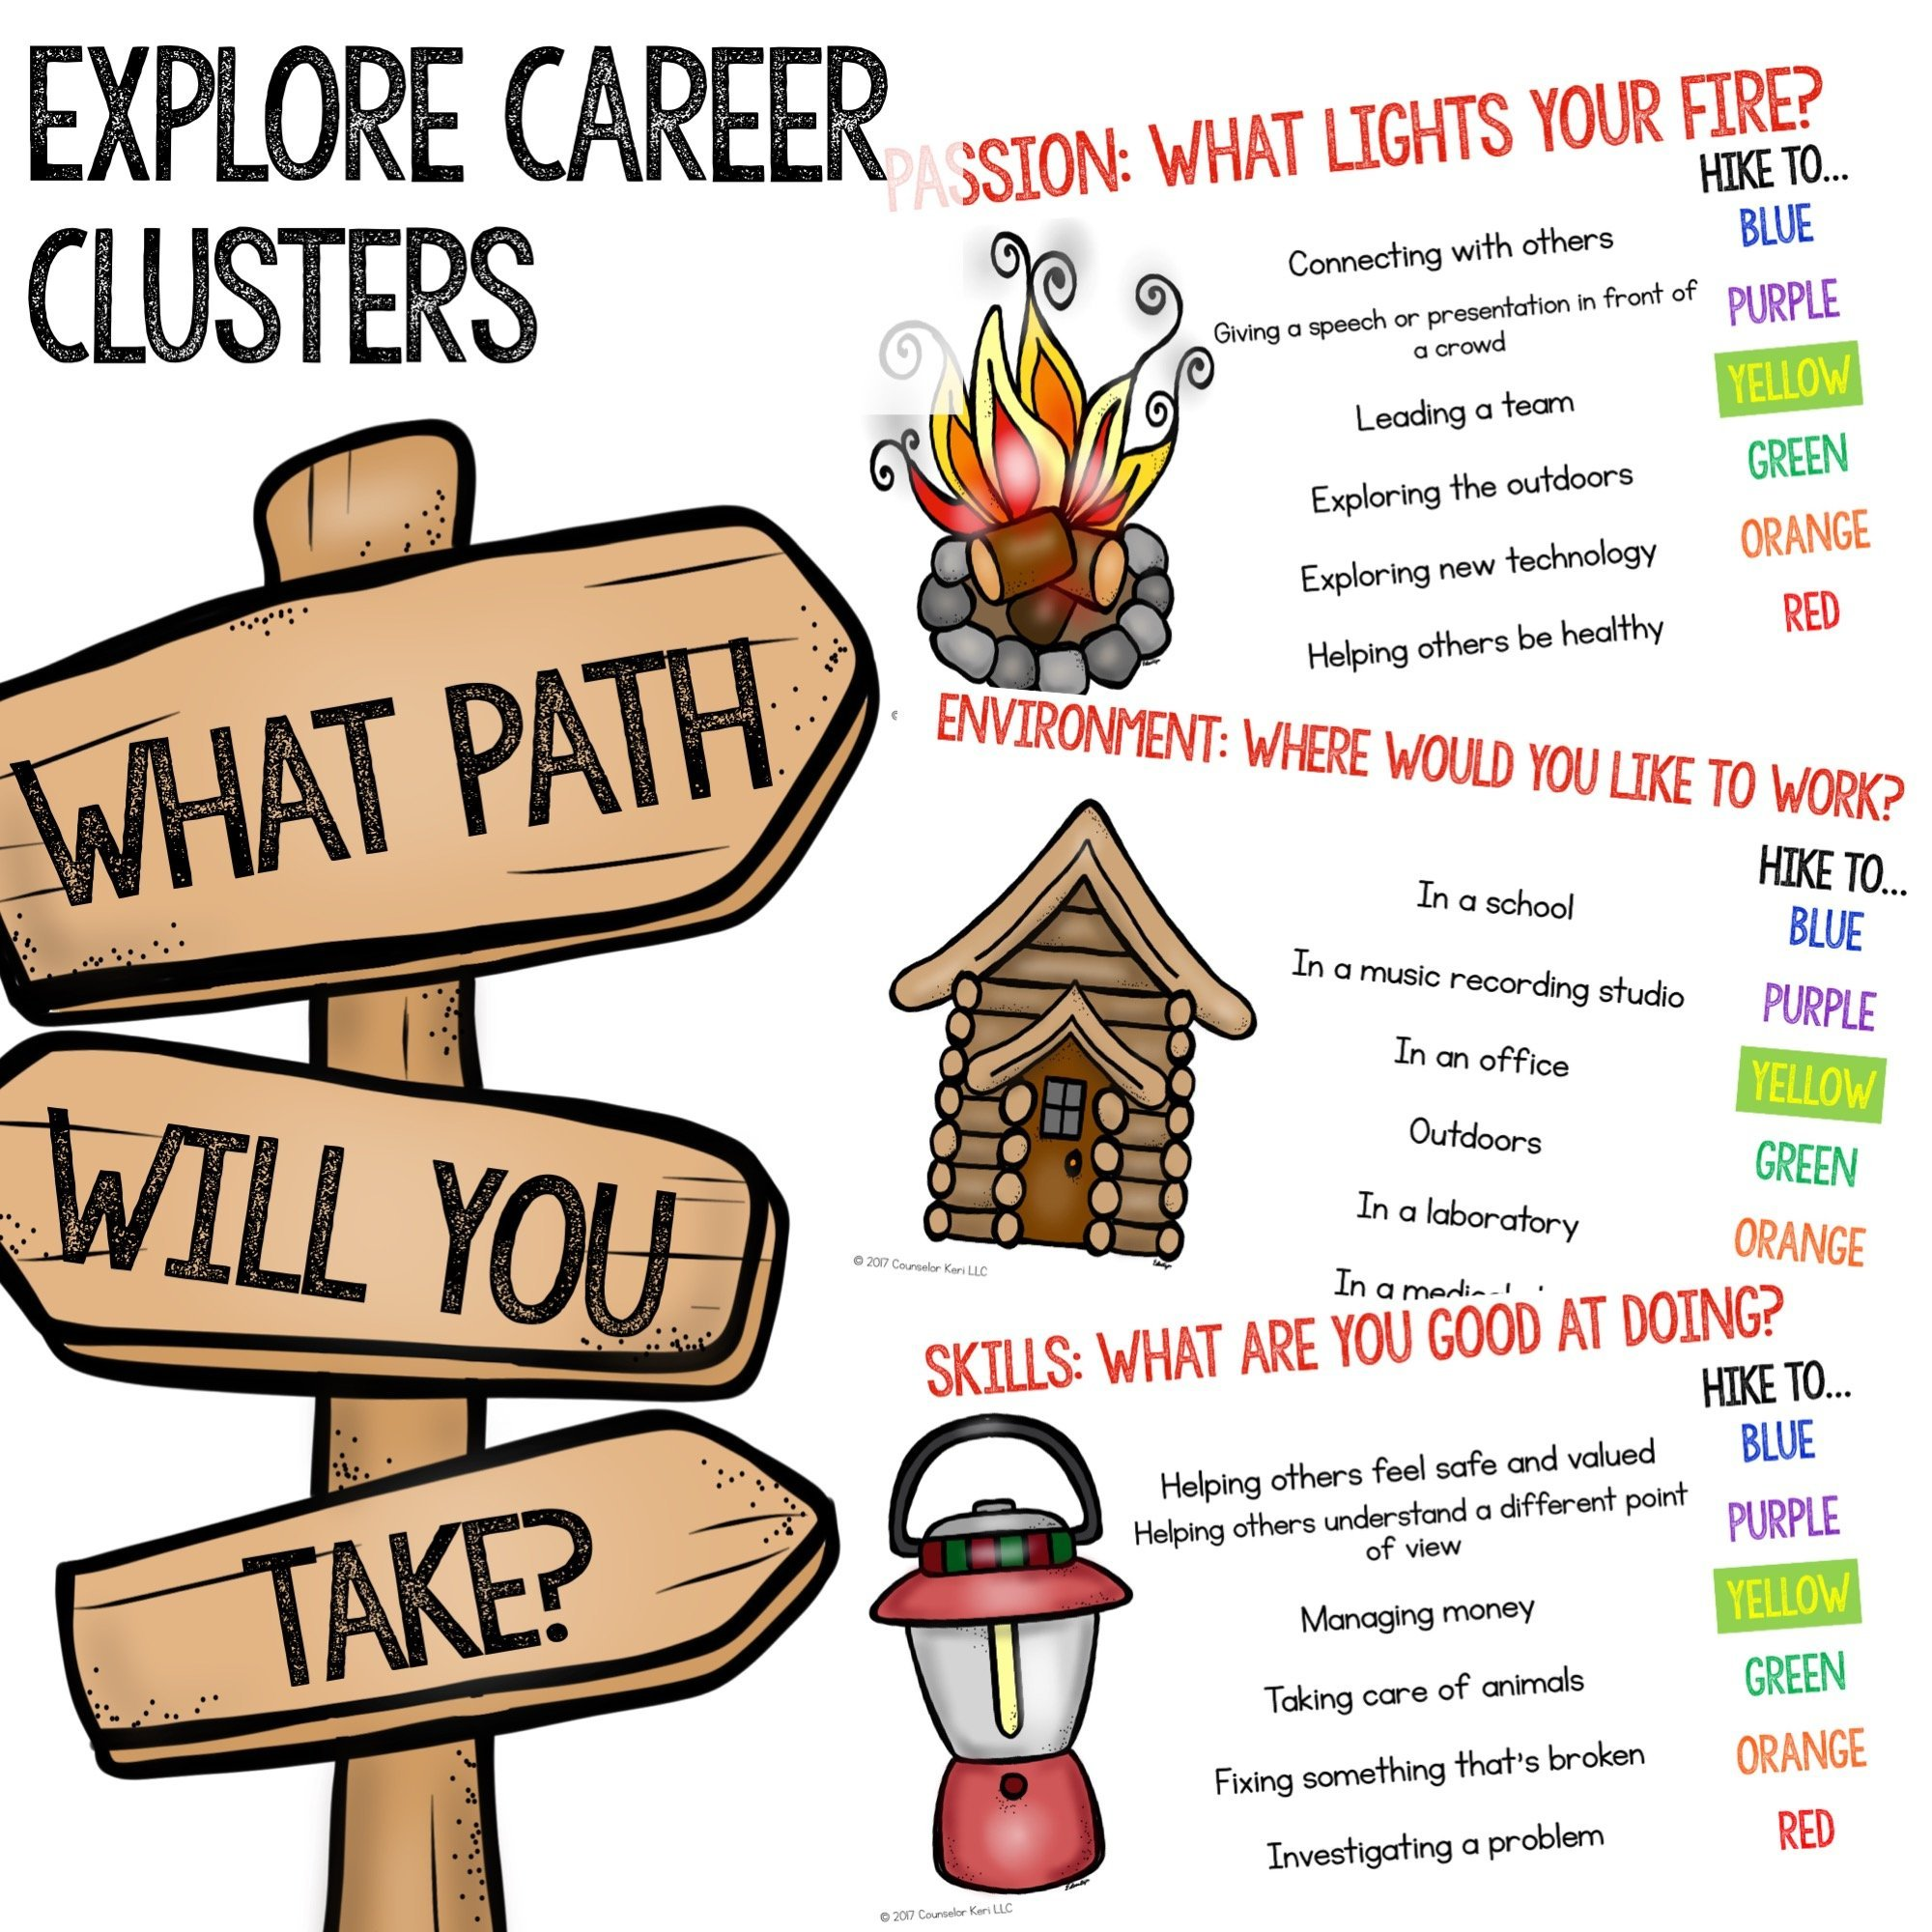 Career guidance clipart 3 » Clipart Portal.